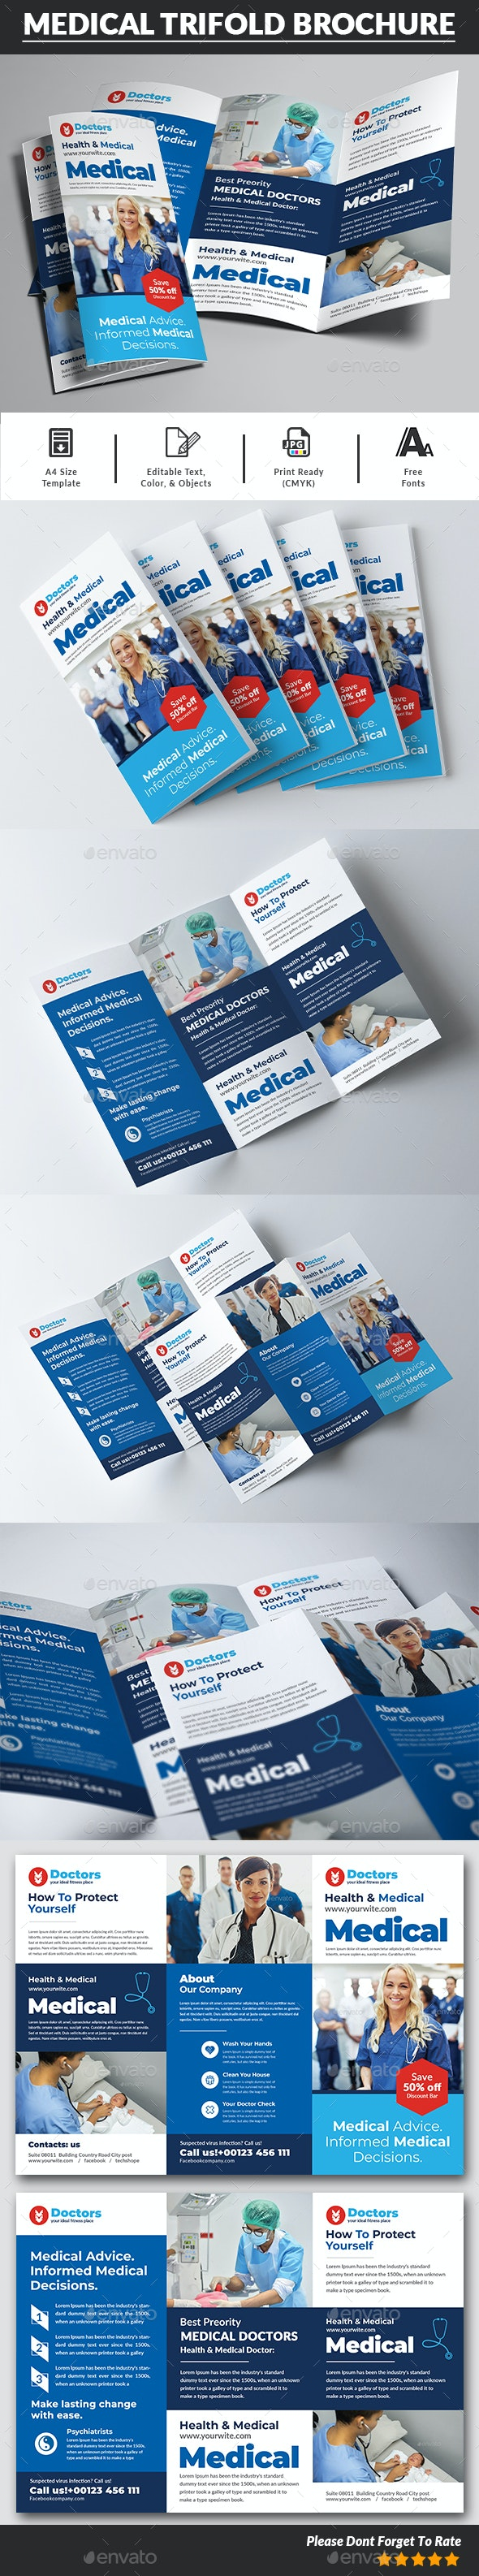 Medical Trifold Brochure Templates - Corporate Brochures